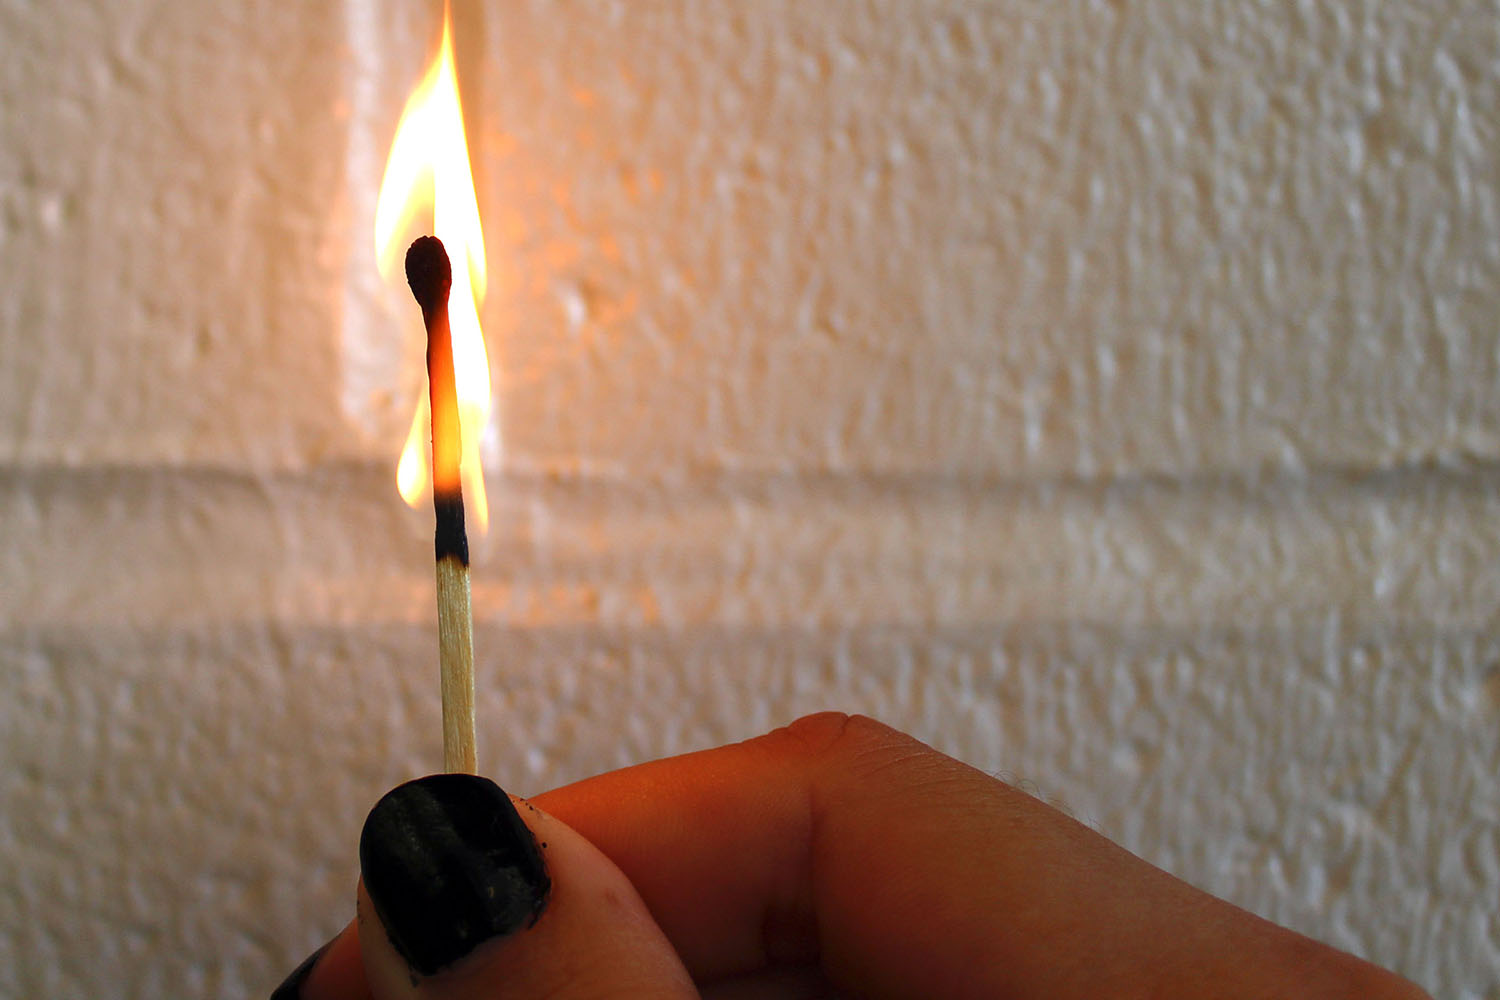 A match slowly loses it's fire. This is symbolic of the way gifted student's ambition slowly slips away over the years.